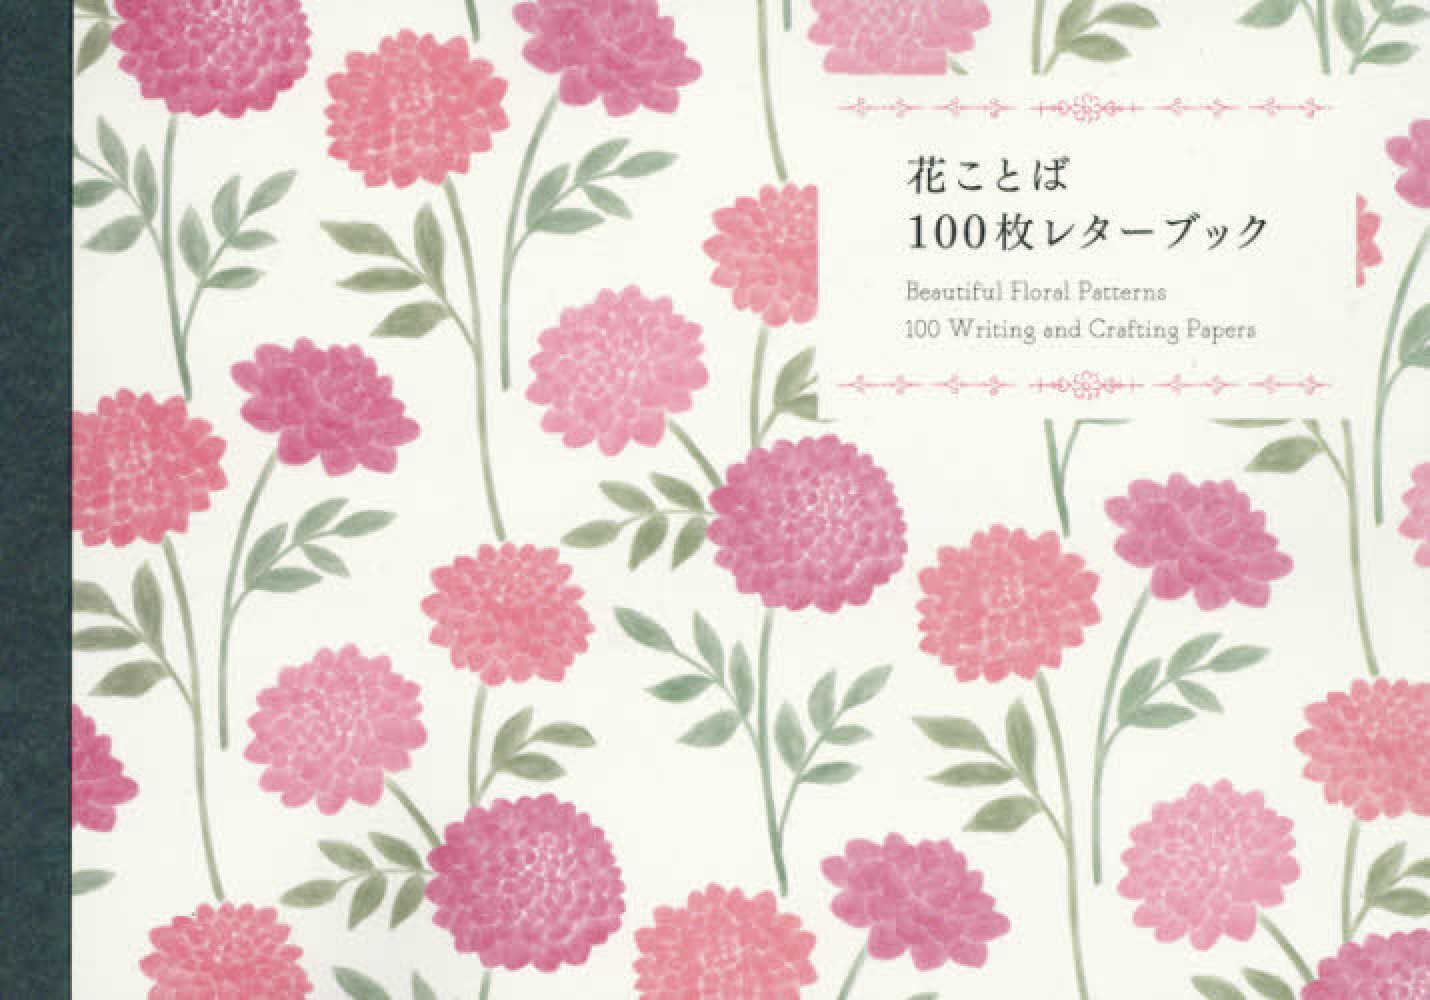 100 WRITING AND CRAFTING PAPERS BEAUTIFUL FLORAL PATTERNS /JAPONAIS